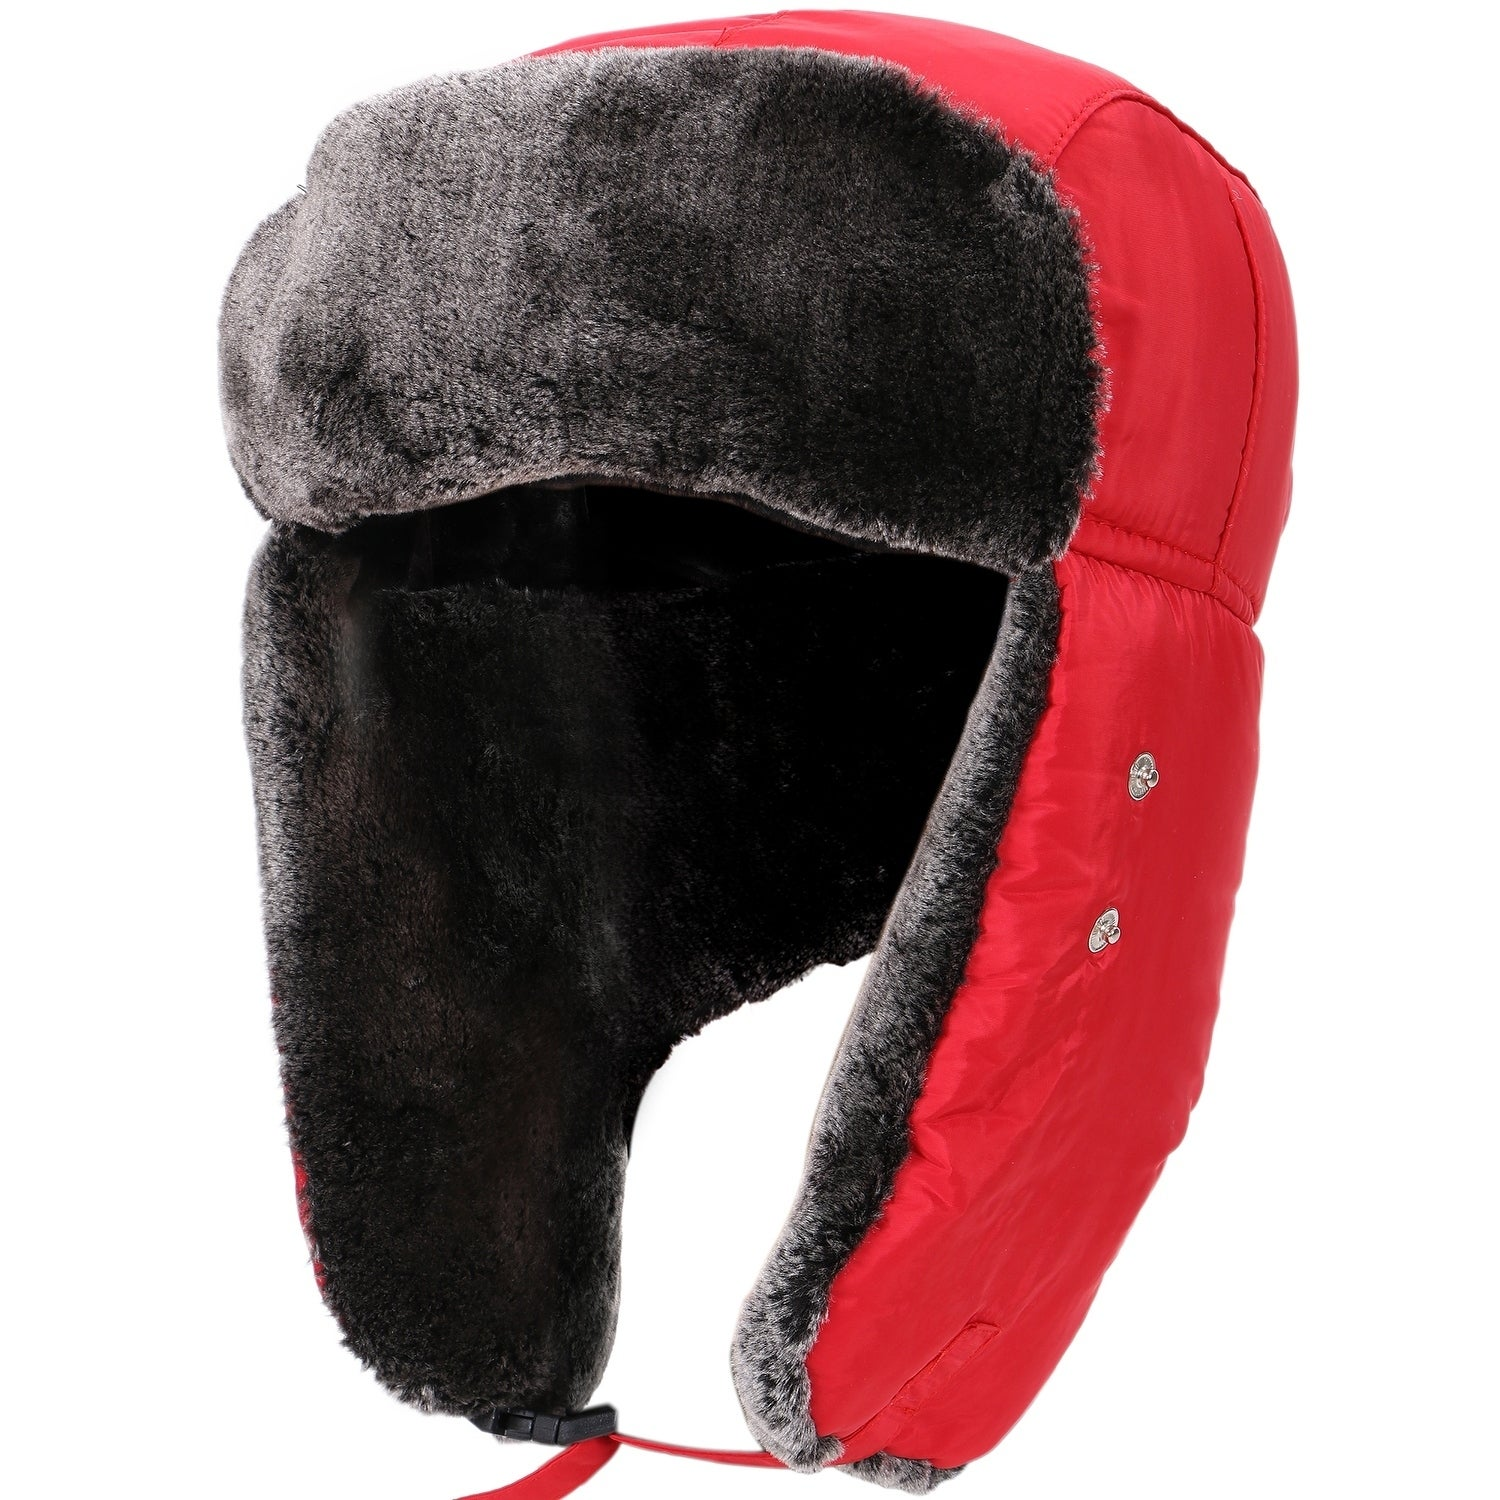 7233ade0a22 Shop Women Men's Weatherproof Faux Fur Lined Trapper Hat w/ Earflaps - On  Sale - Free Shipping On Orders Over $45 - Overstock - 19996291